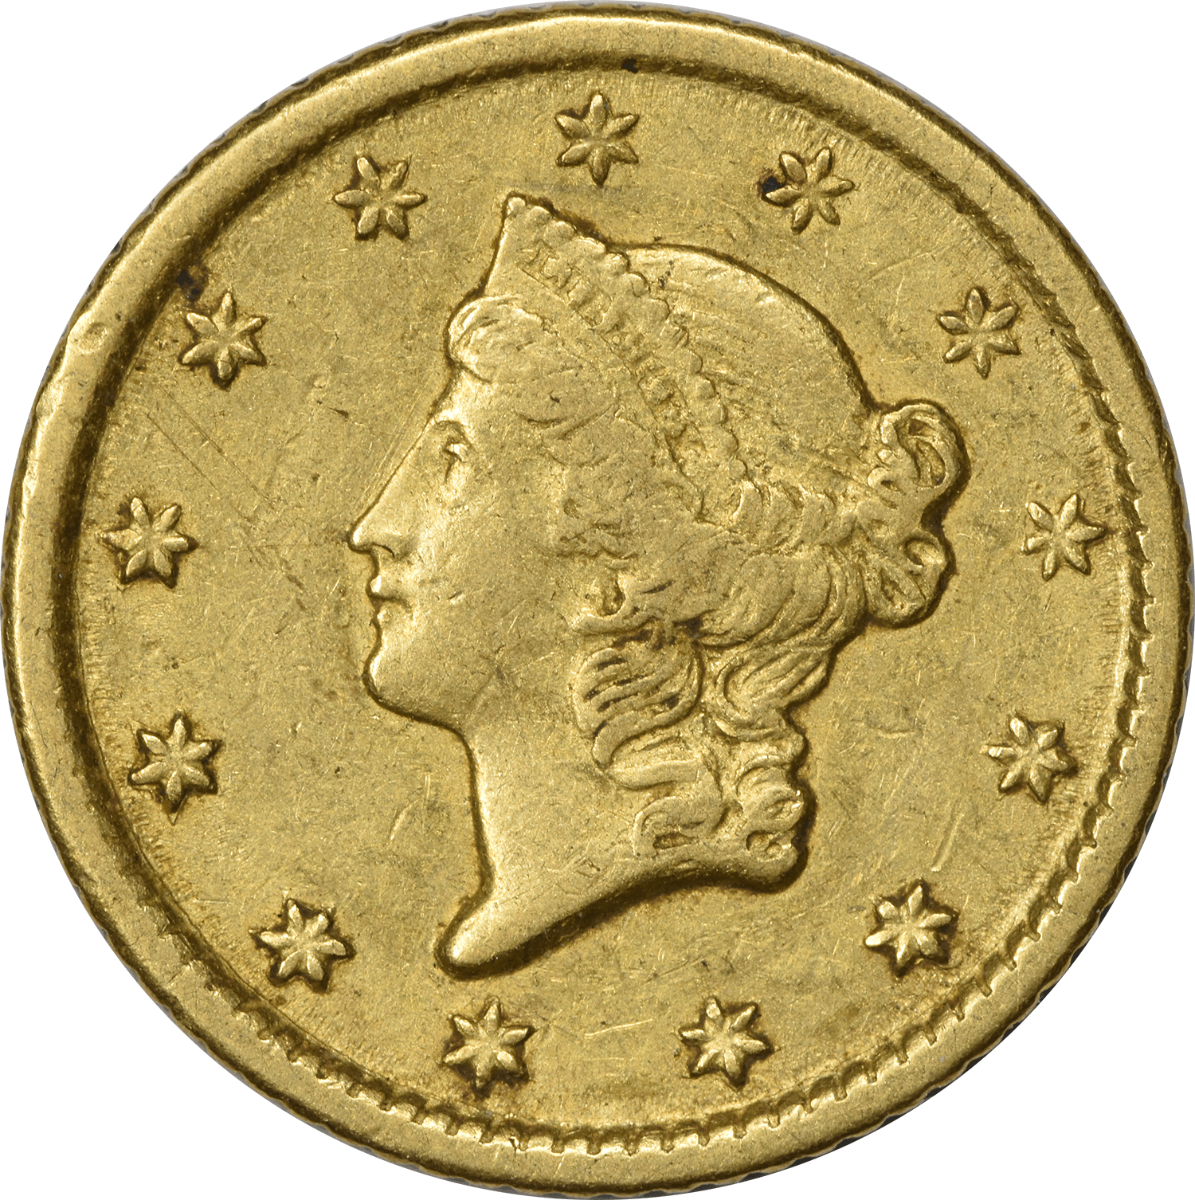 1851-O $1 Gold, Type 1, EF, Uncertified